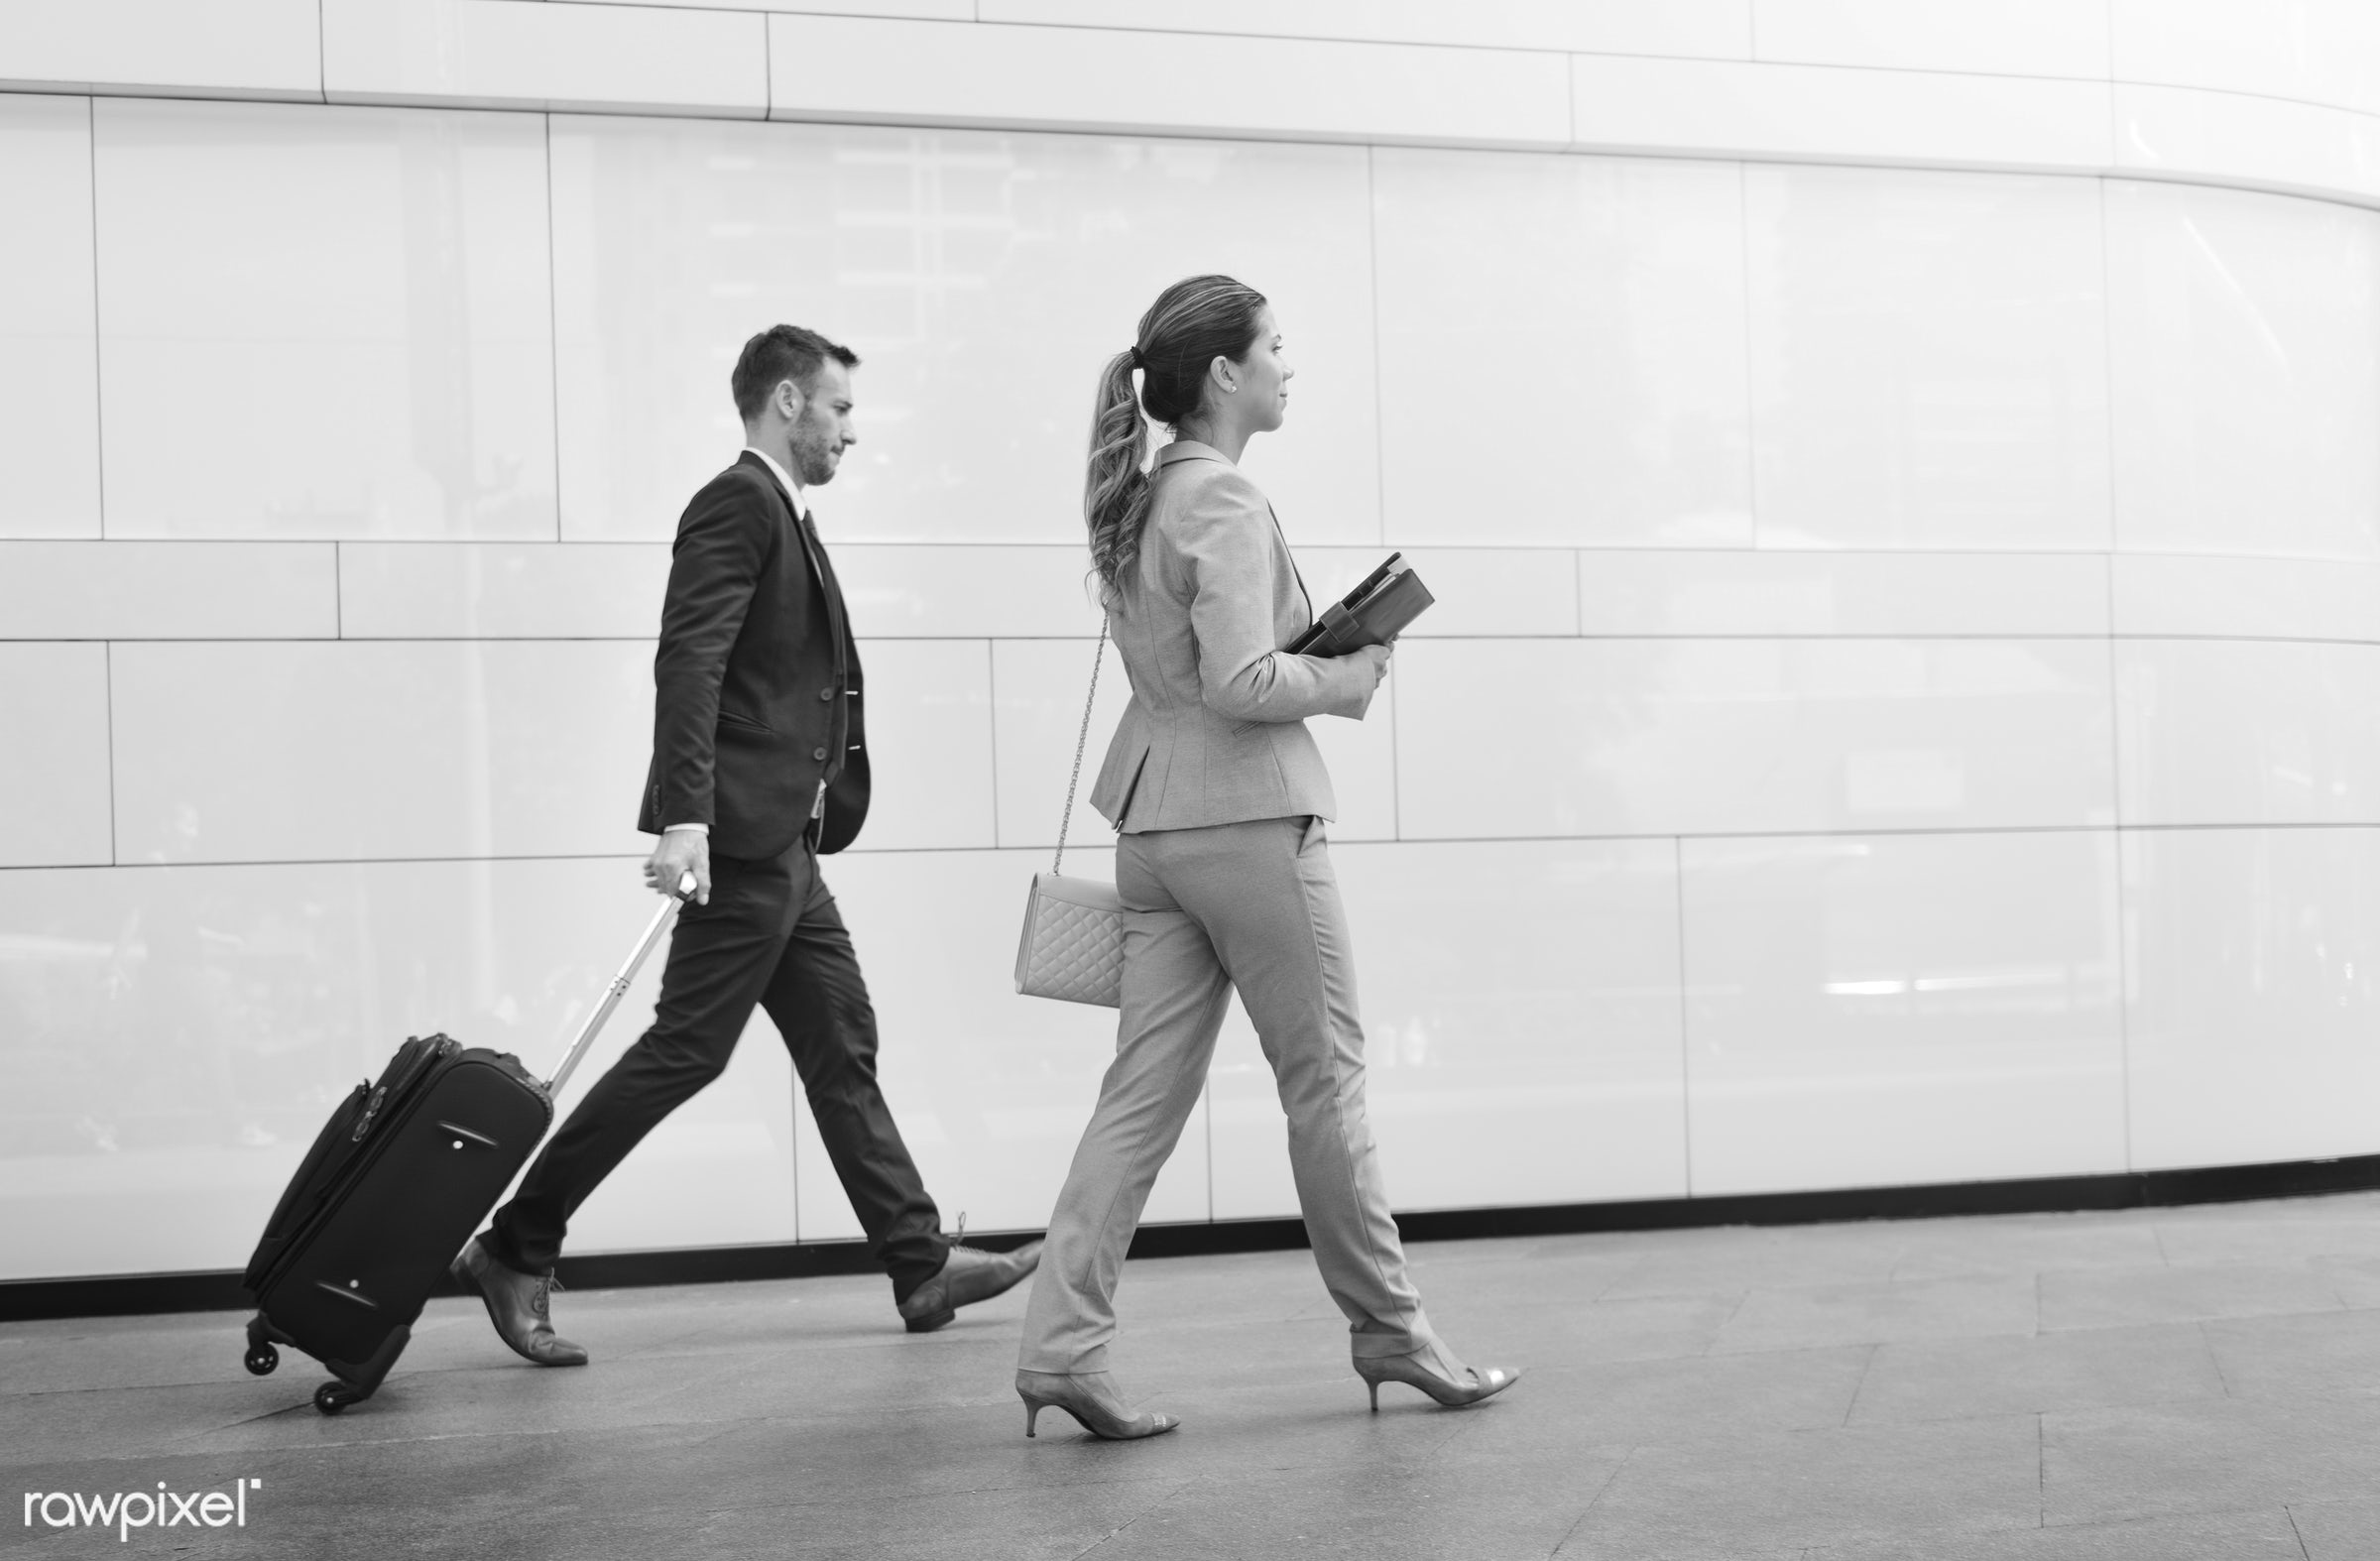 business, business people, business travel, businessman, businesswoman, city, city life, commuter, corporate, group of...